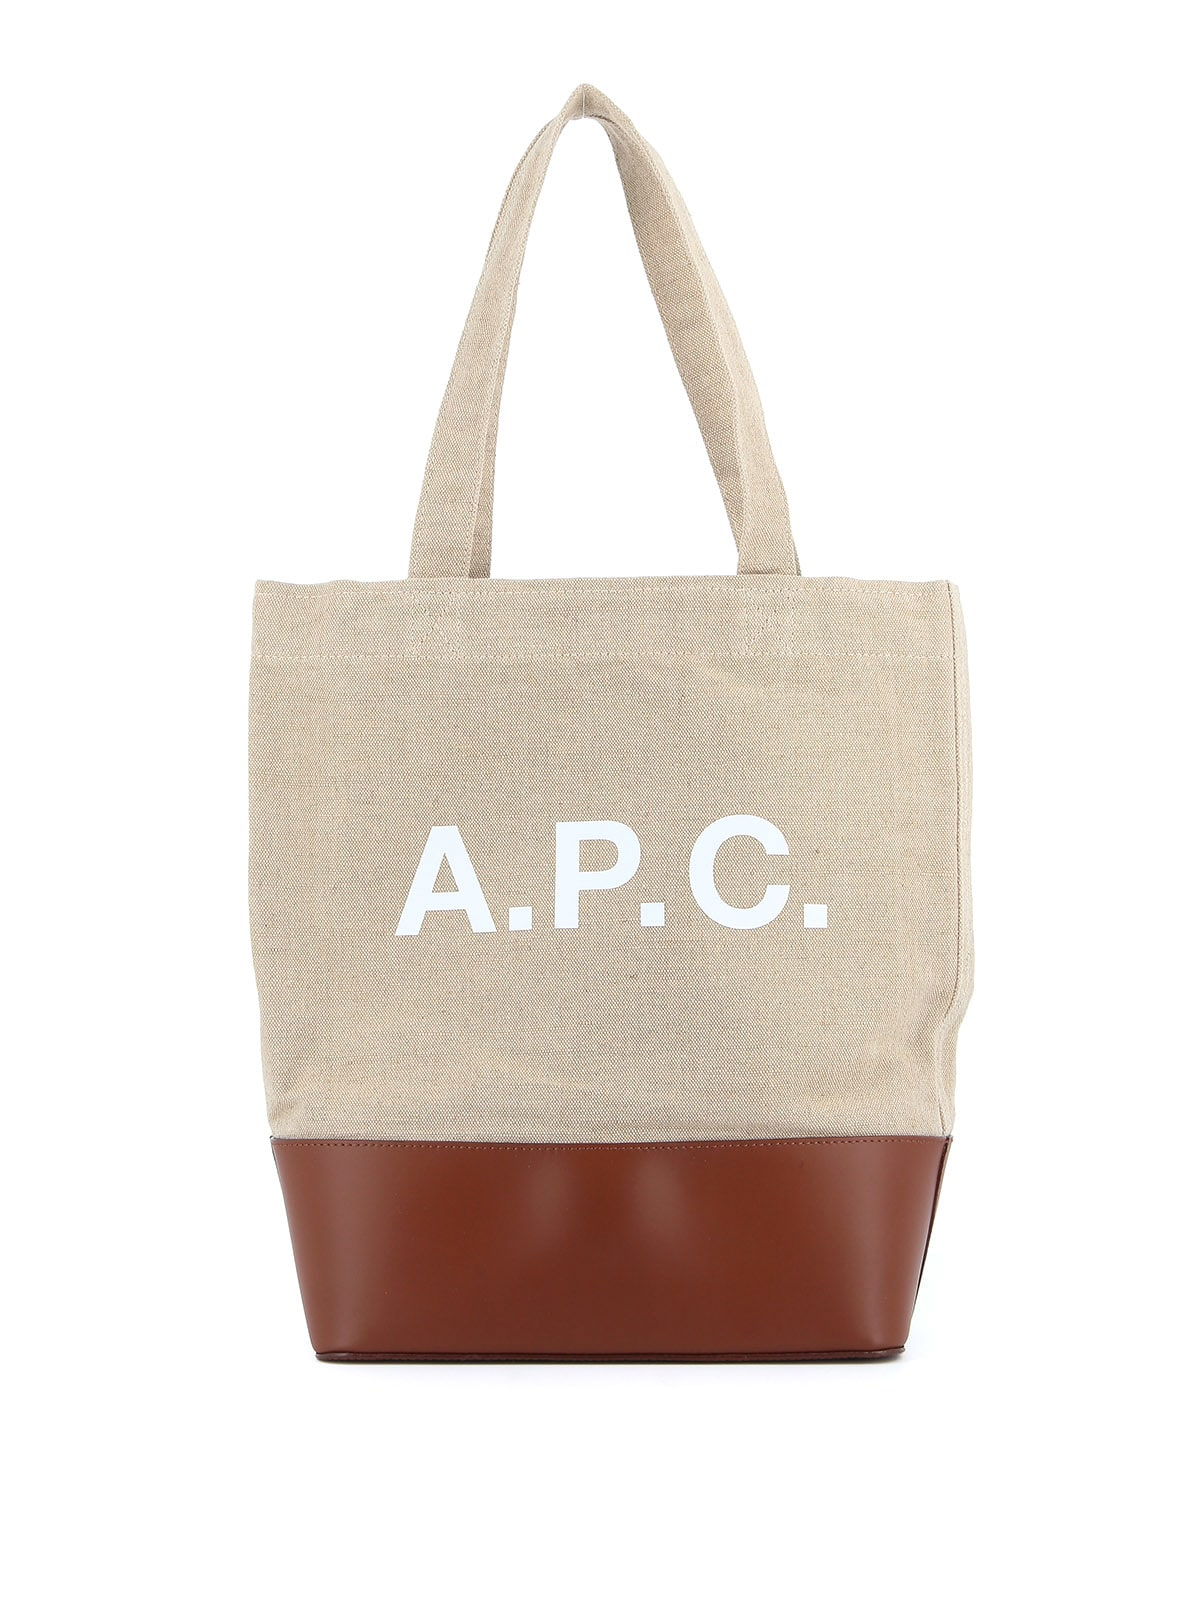 A.p.c. Canvases TOTE AXELLE